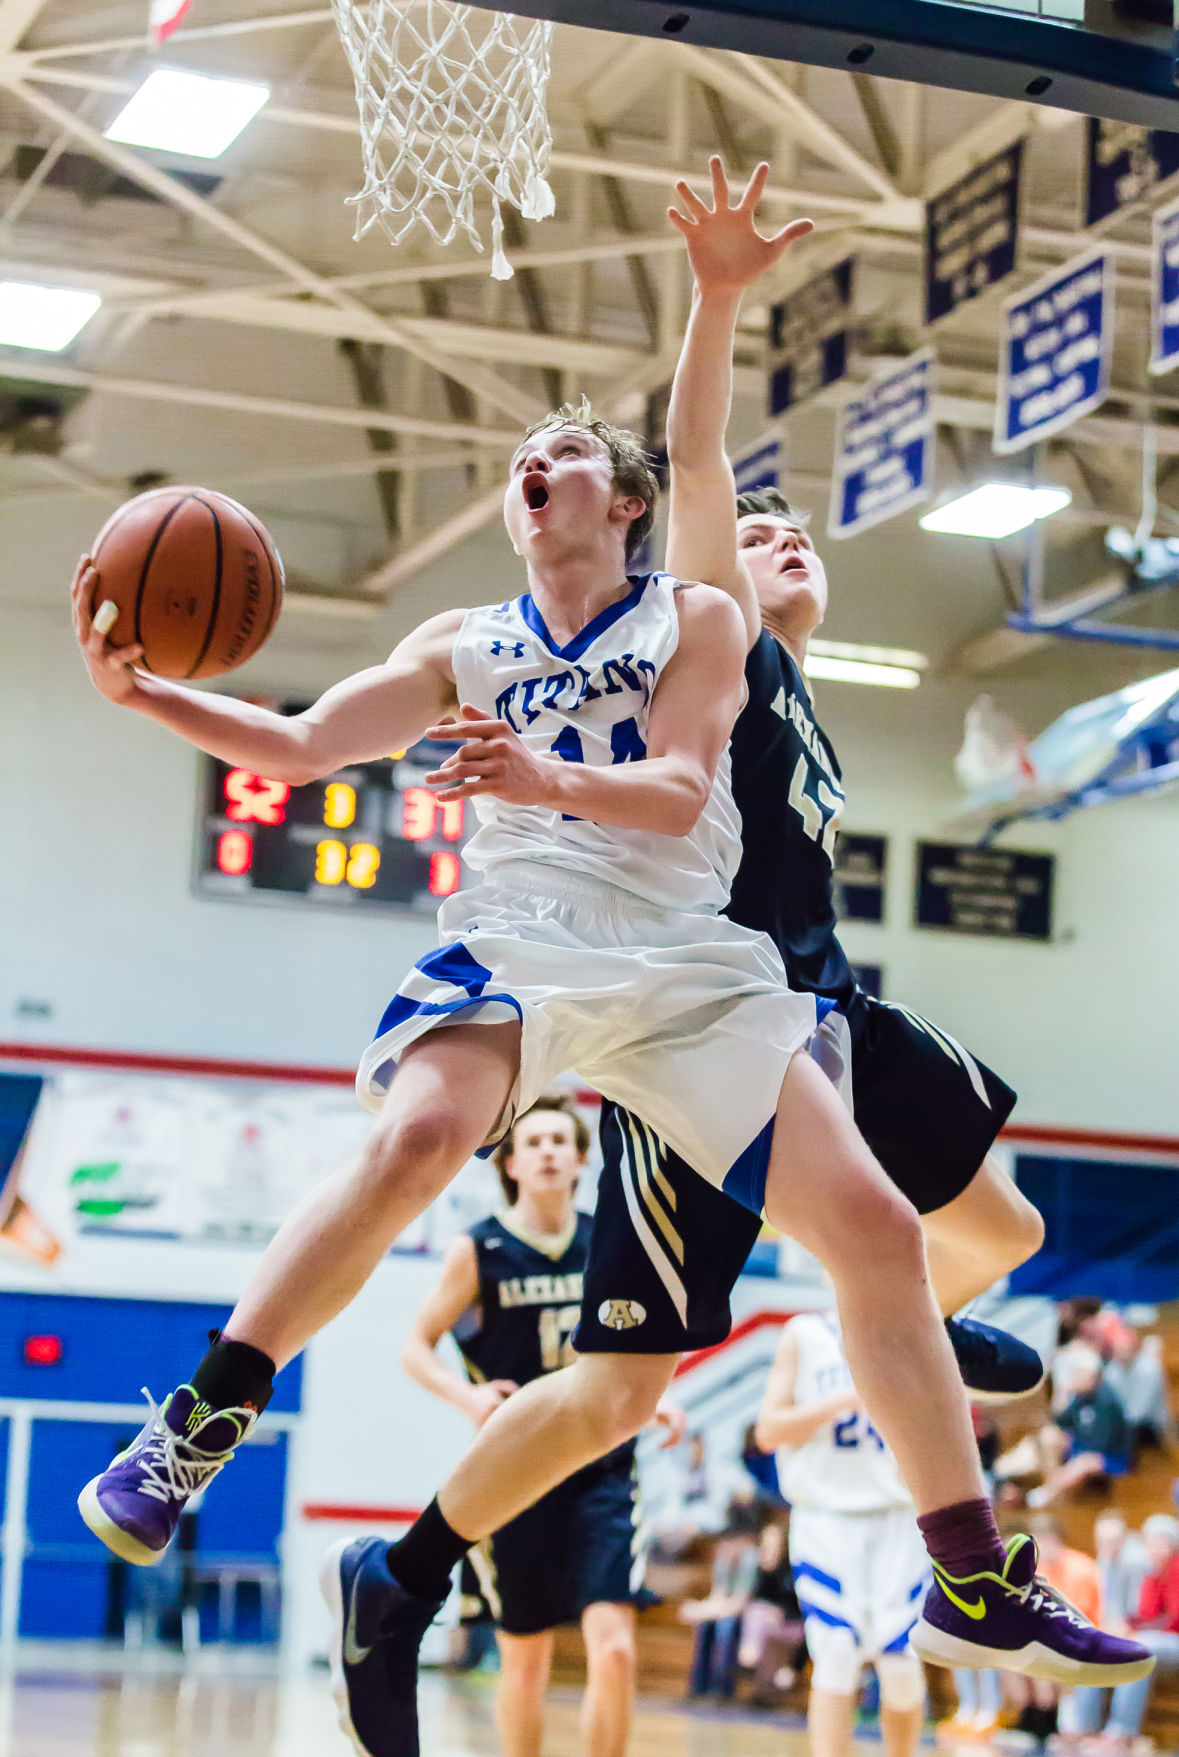 Titans avoid mauling by Cougars, advance to NWC semifinals